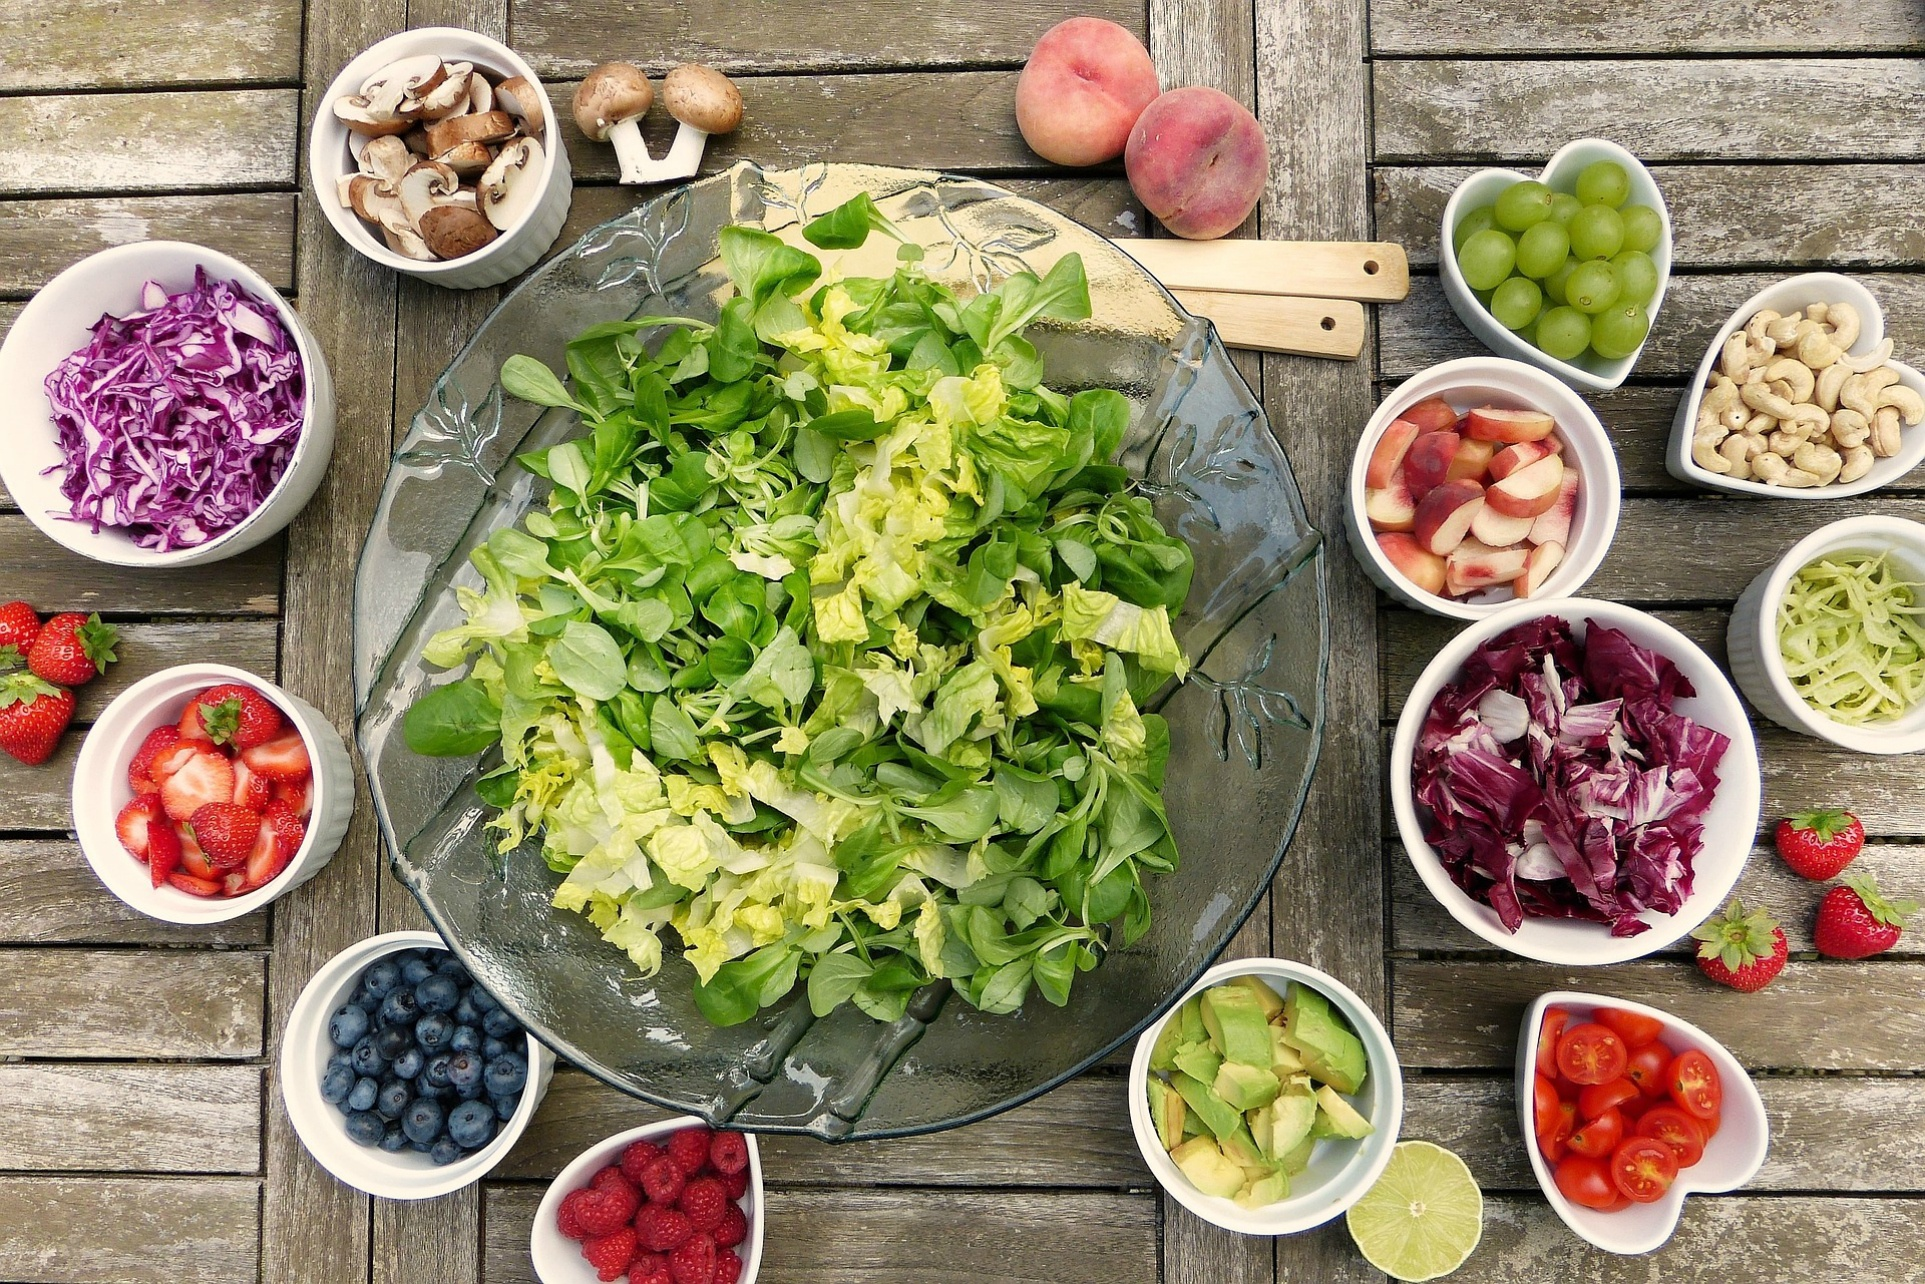 whole30 compliant foods